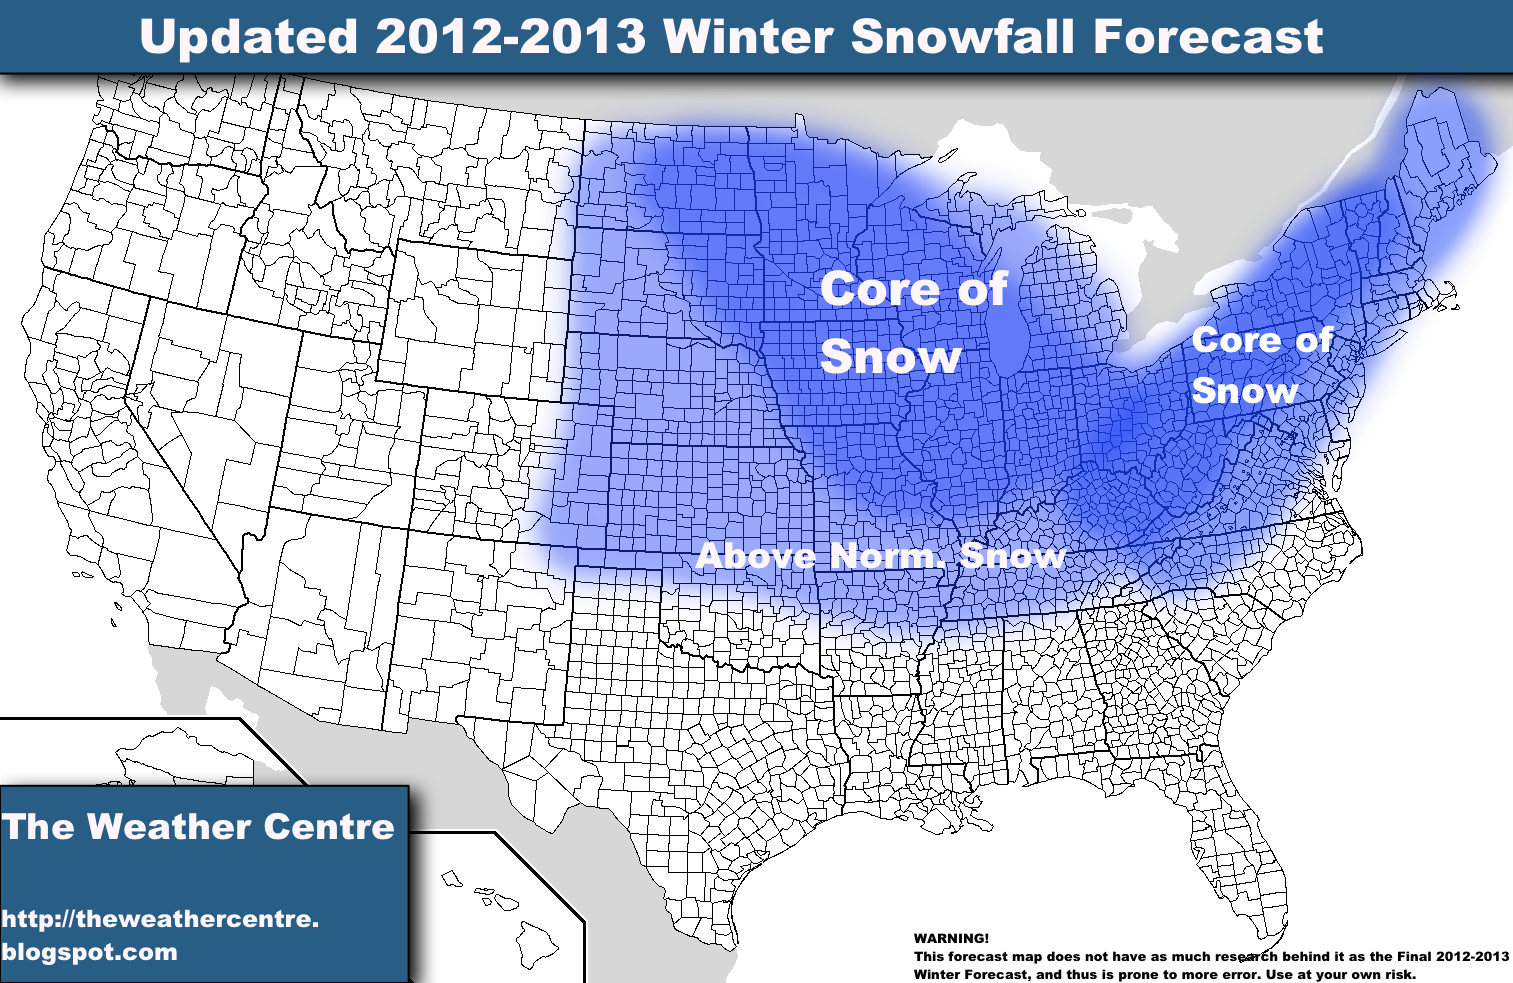 Updated Snowfall Forecast for 2012-2013 Winter